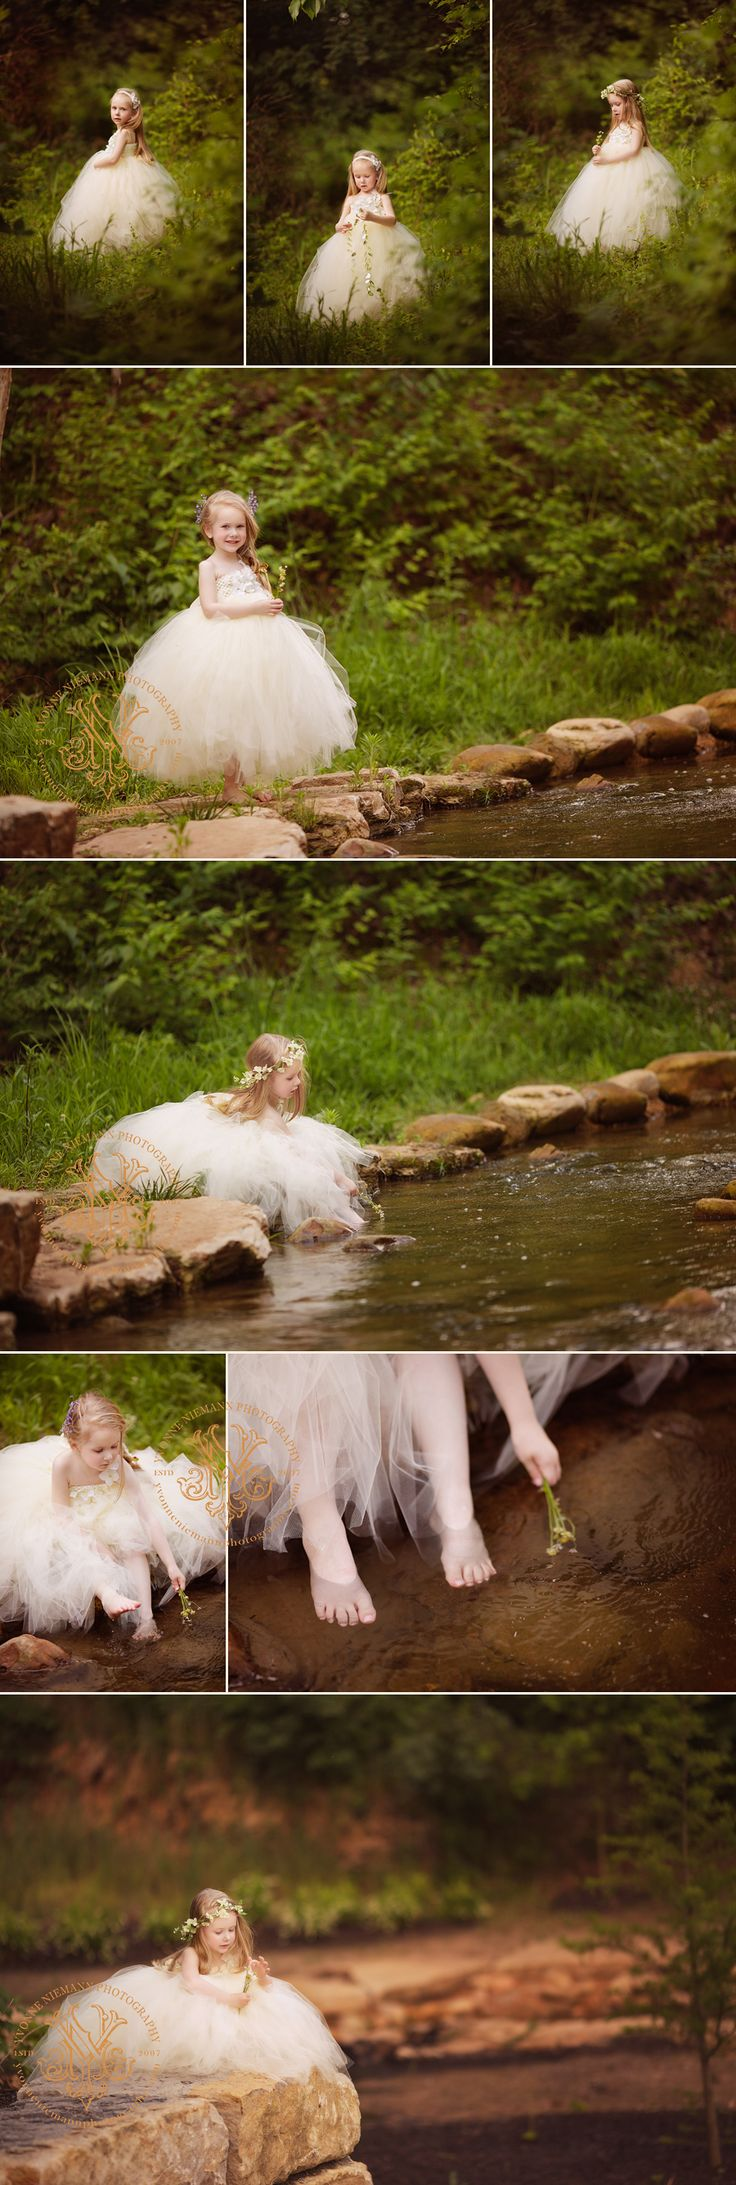 Beautiful forest fairy portraits of a little girl in St. Louis taken by Yvonne Niemann Photography